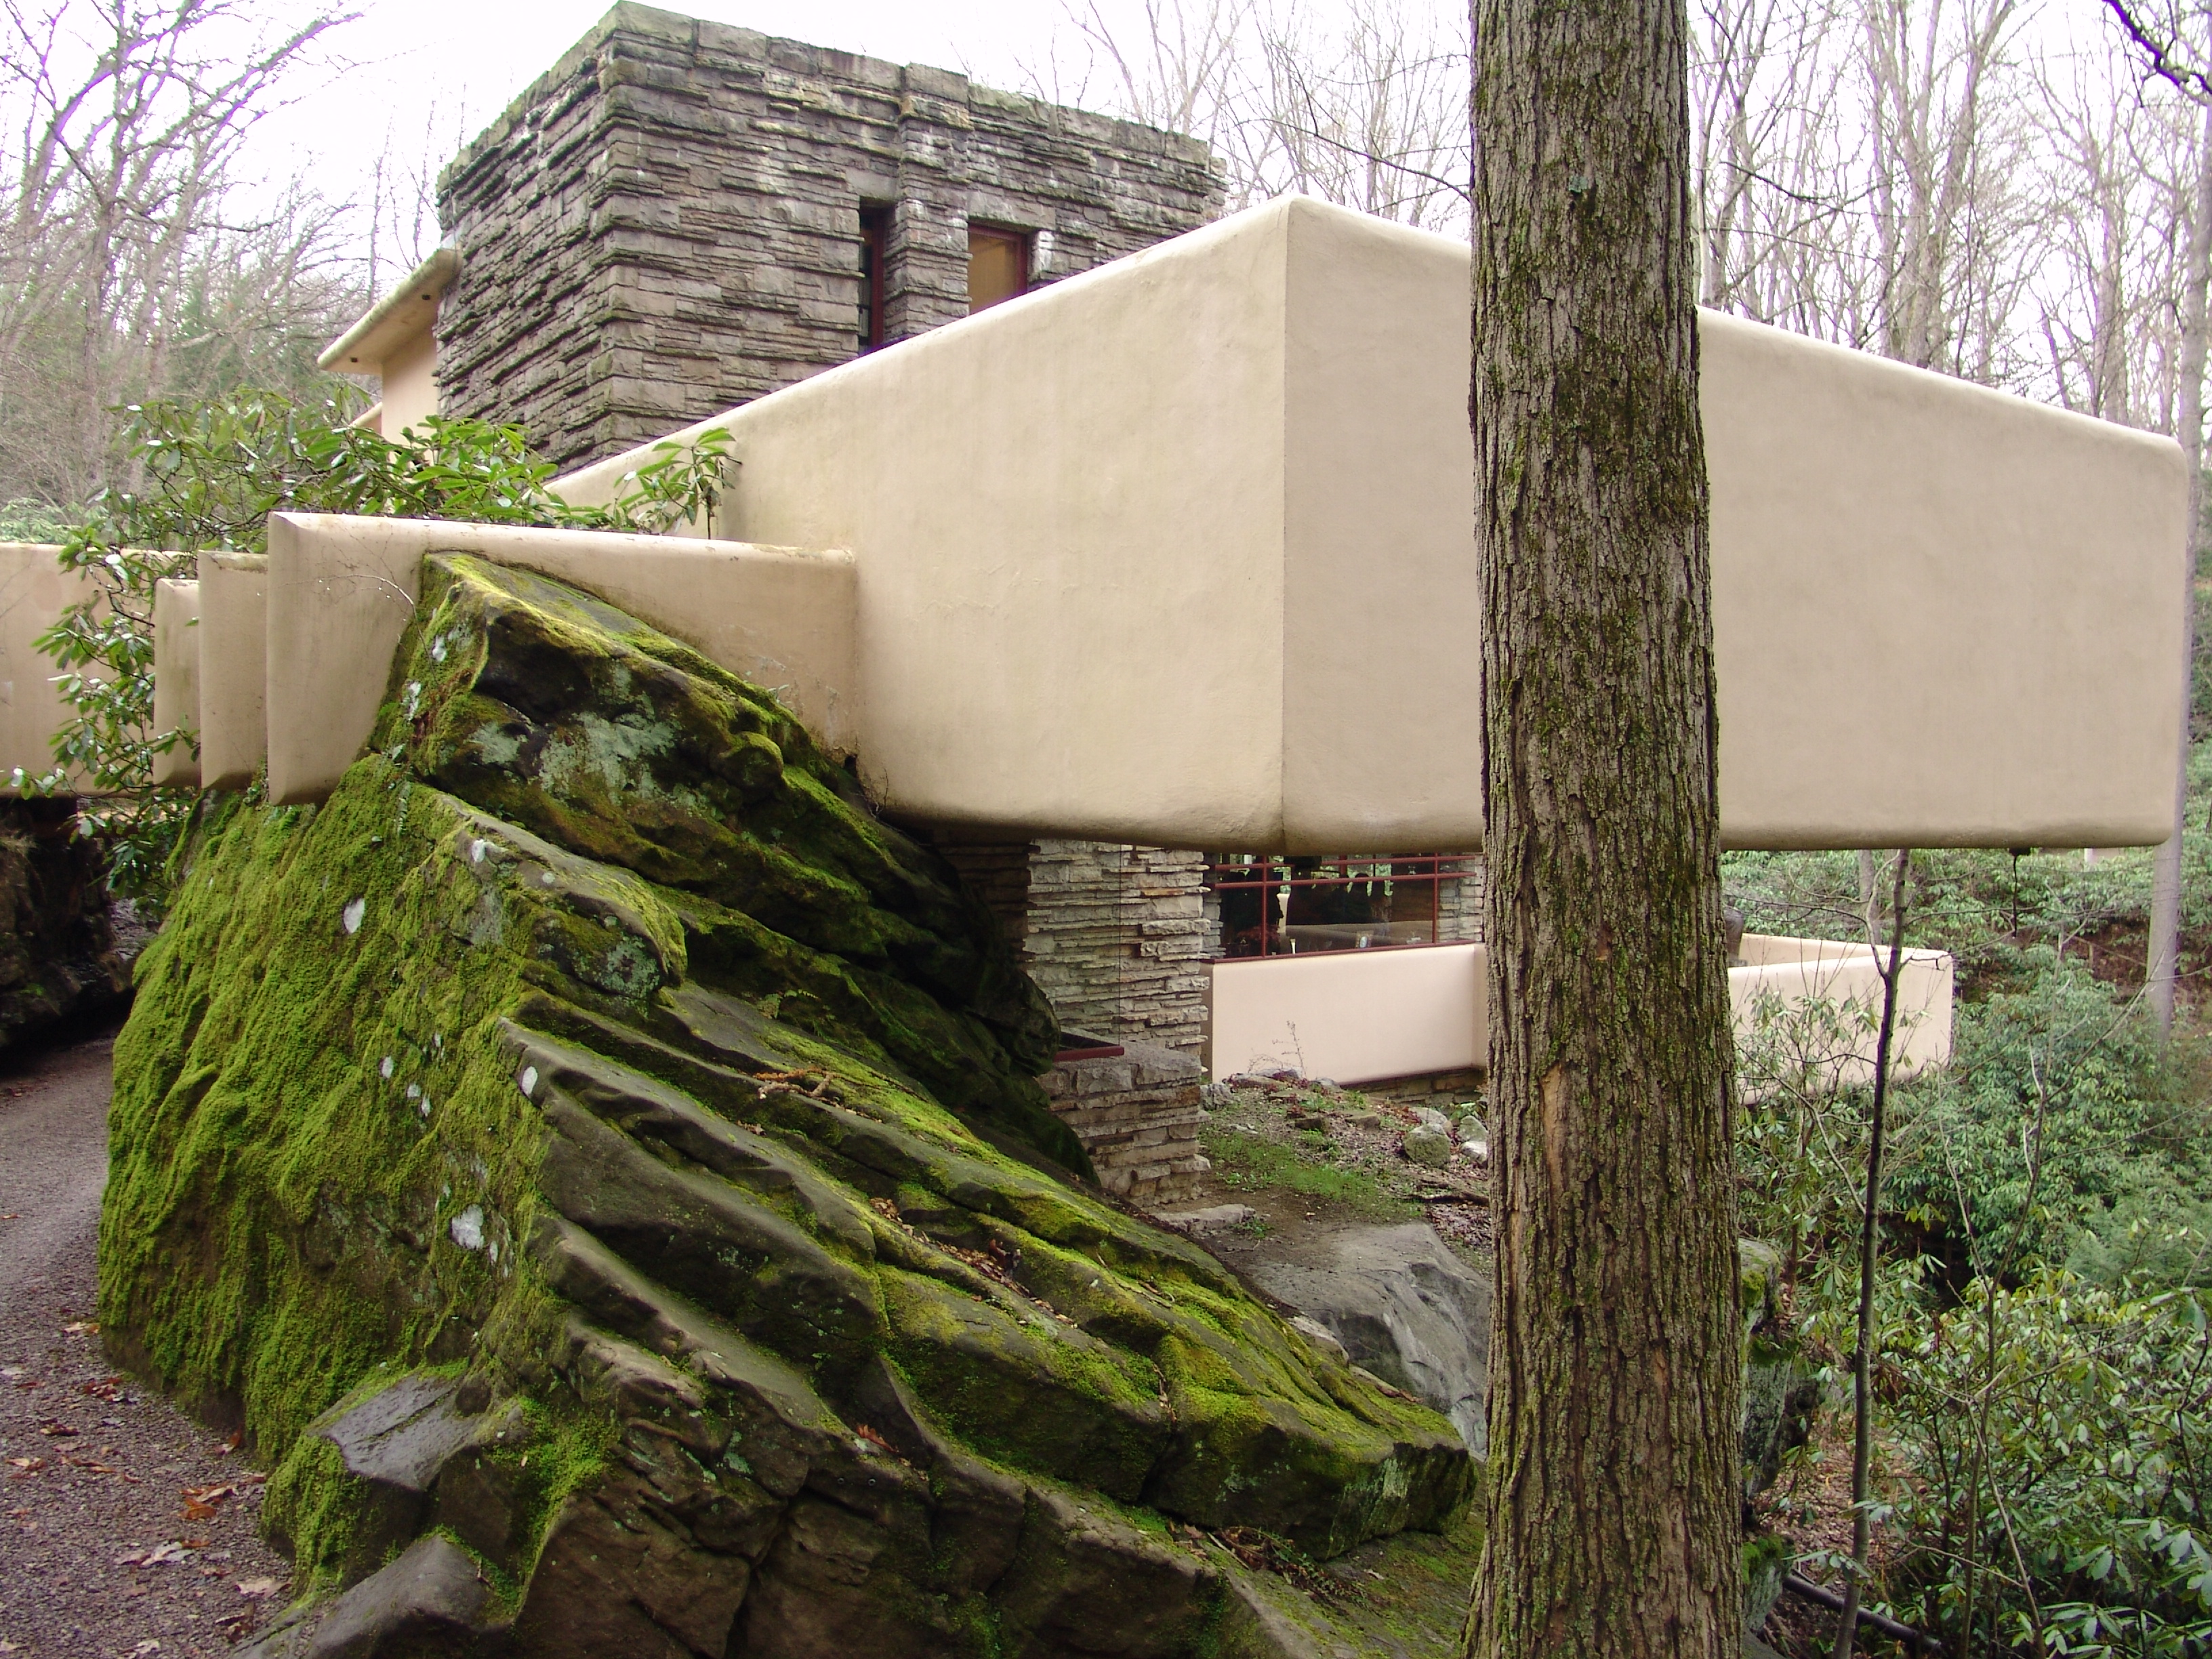 frank lloyd wright falling water essay The passion of frank lloyd wright so that fallingwater reprinted by permission from an essay by william cronon in frank lloyd wright.